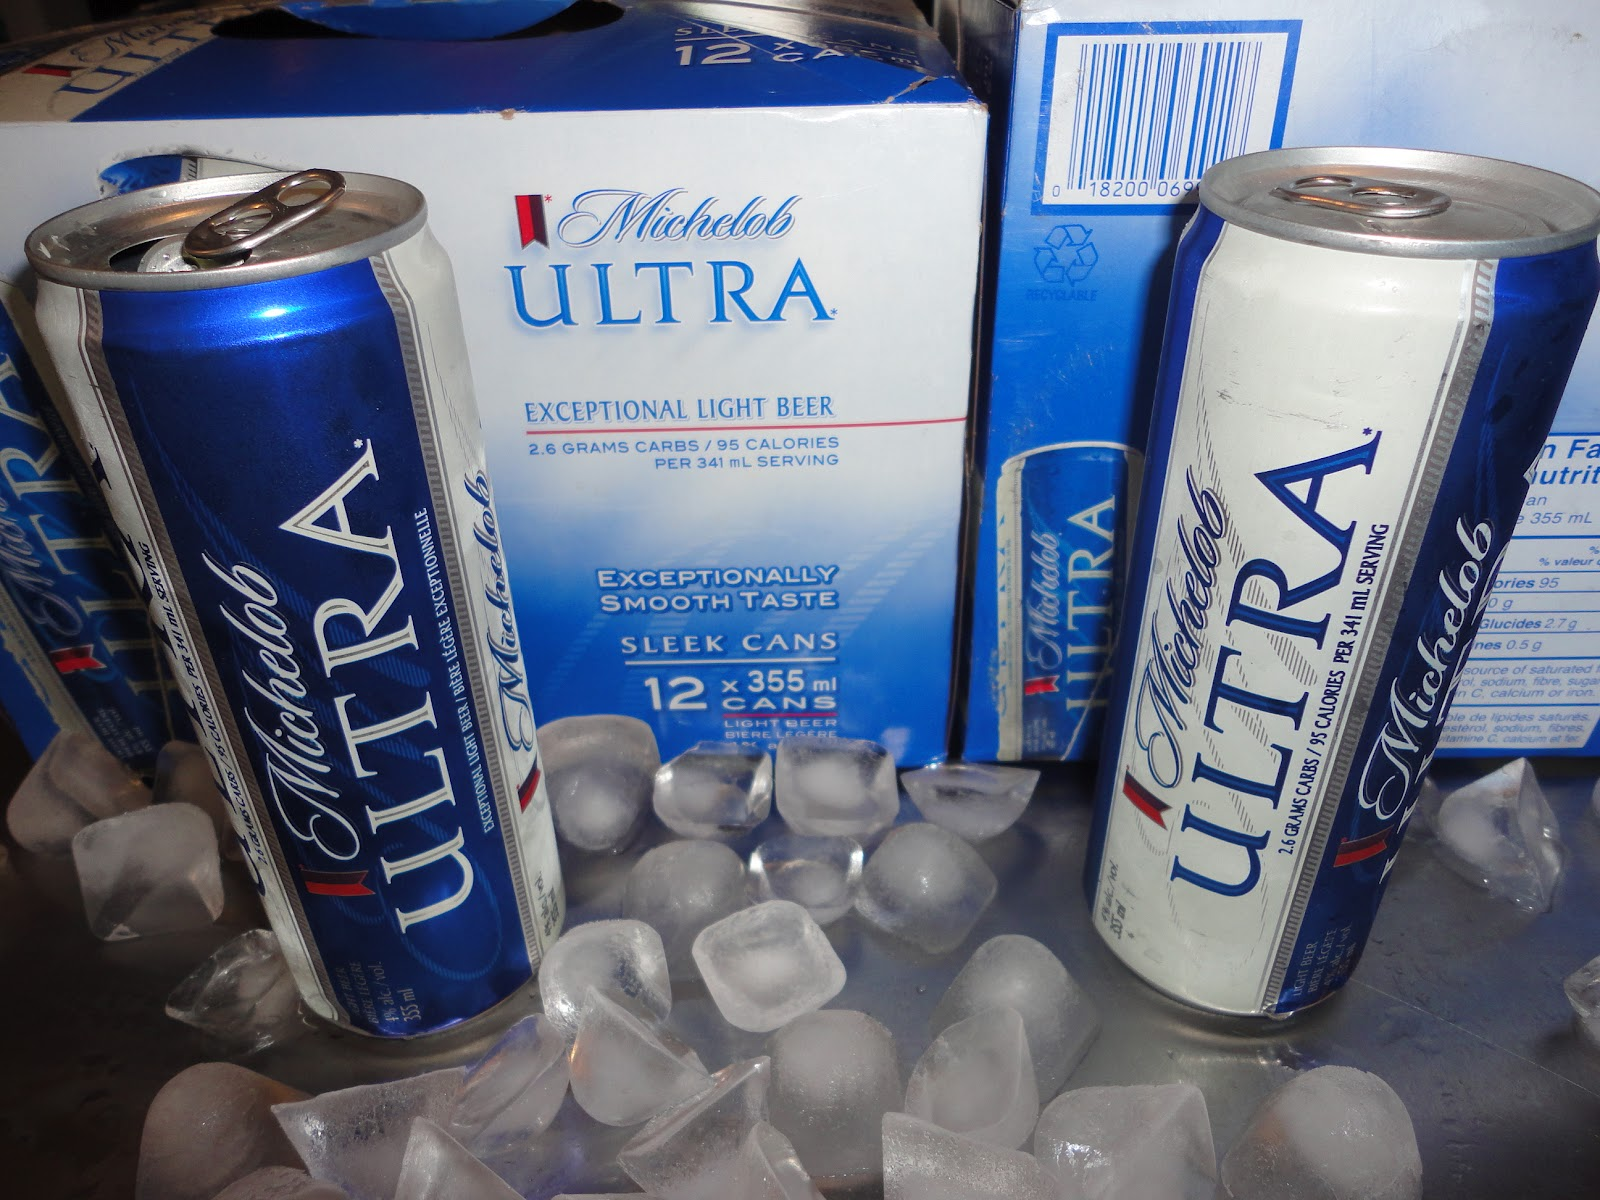 Good Michelob Ultra. 2.6 Grams Or Carbs/ 95 Calories /0.5 Grams Of Protein Per  341ml Serving. Nice Sleek Cans The Way I Love Em! Interesting That They Put  The ... Amazing Design